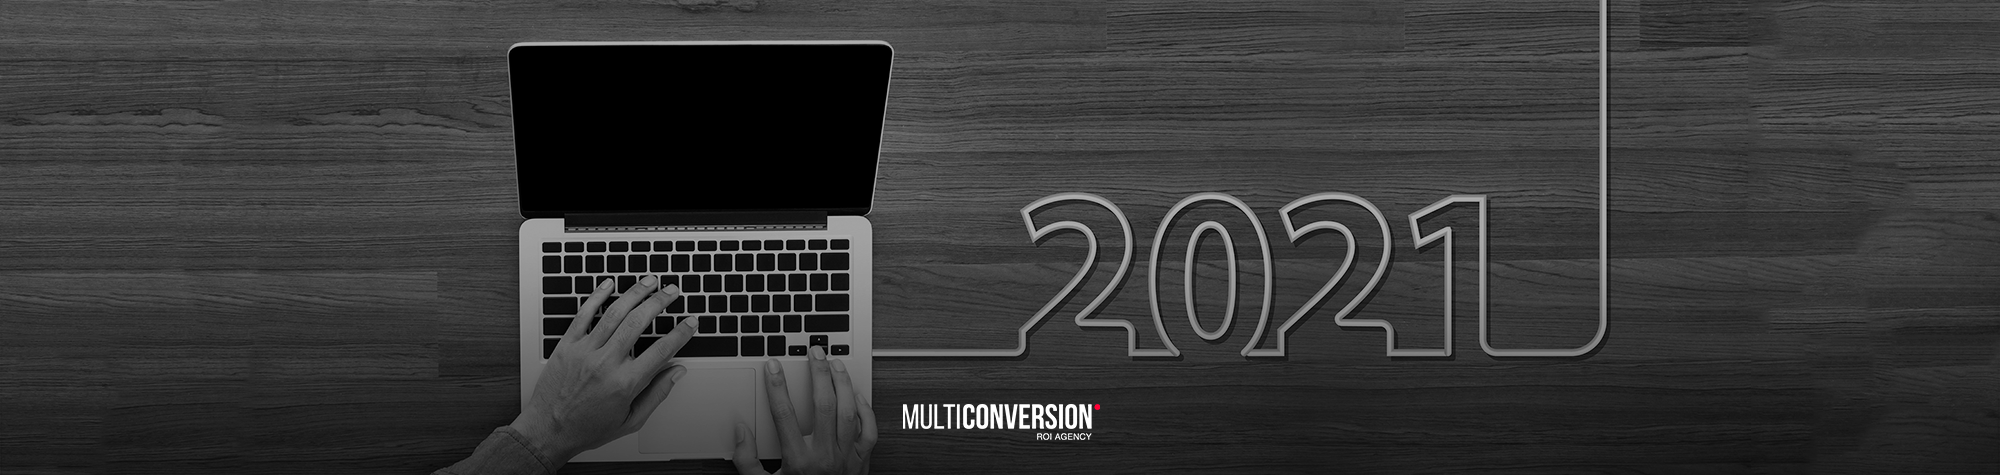 Ecommerce and Social Media Trends 2021: All the news for next year